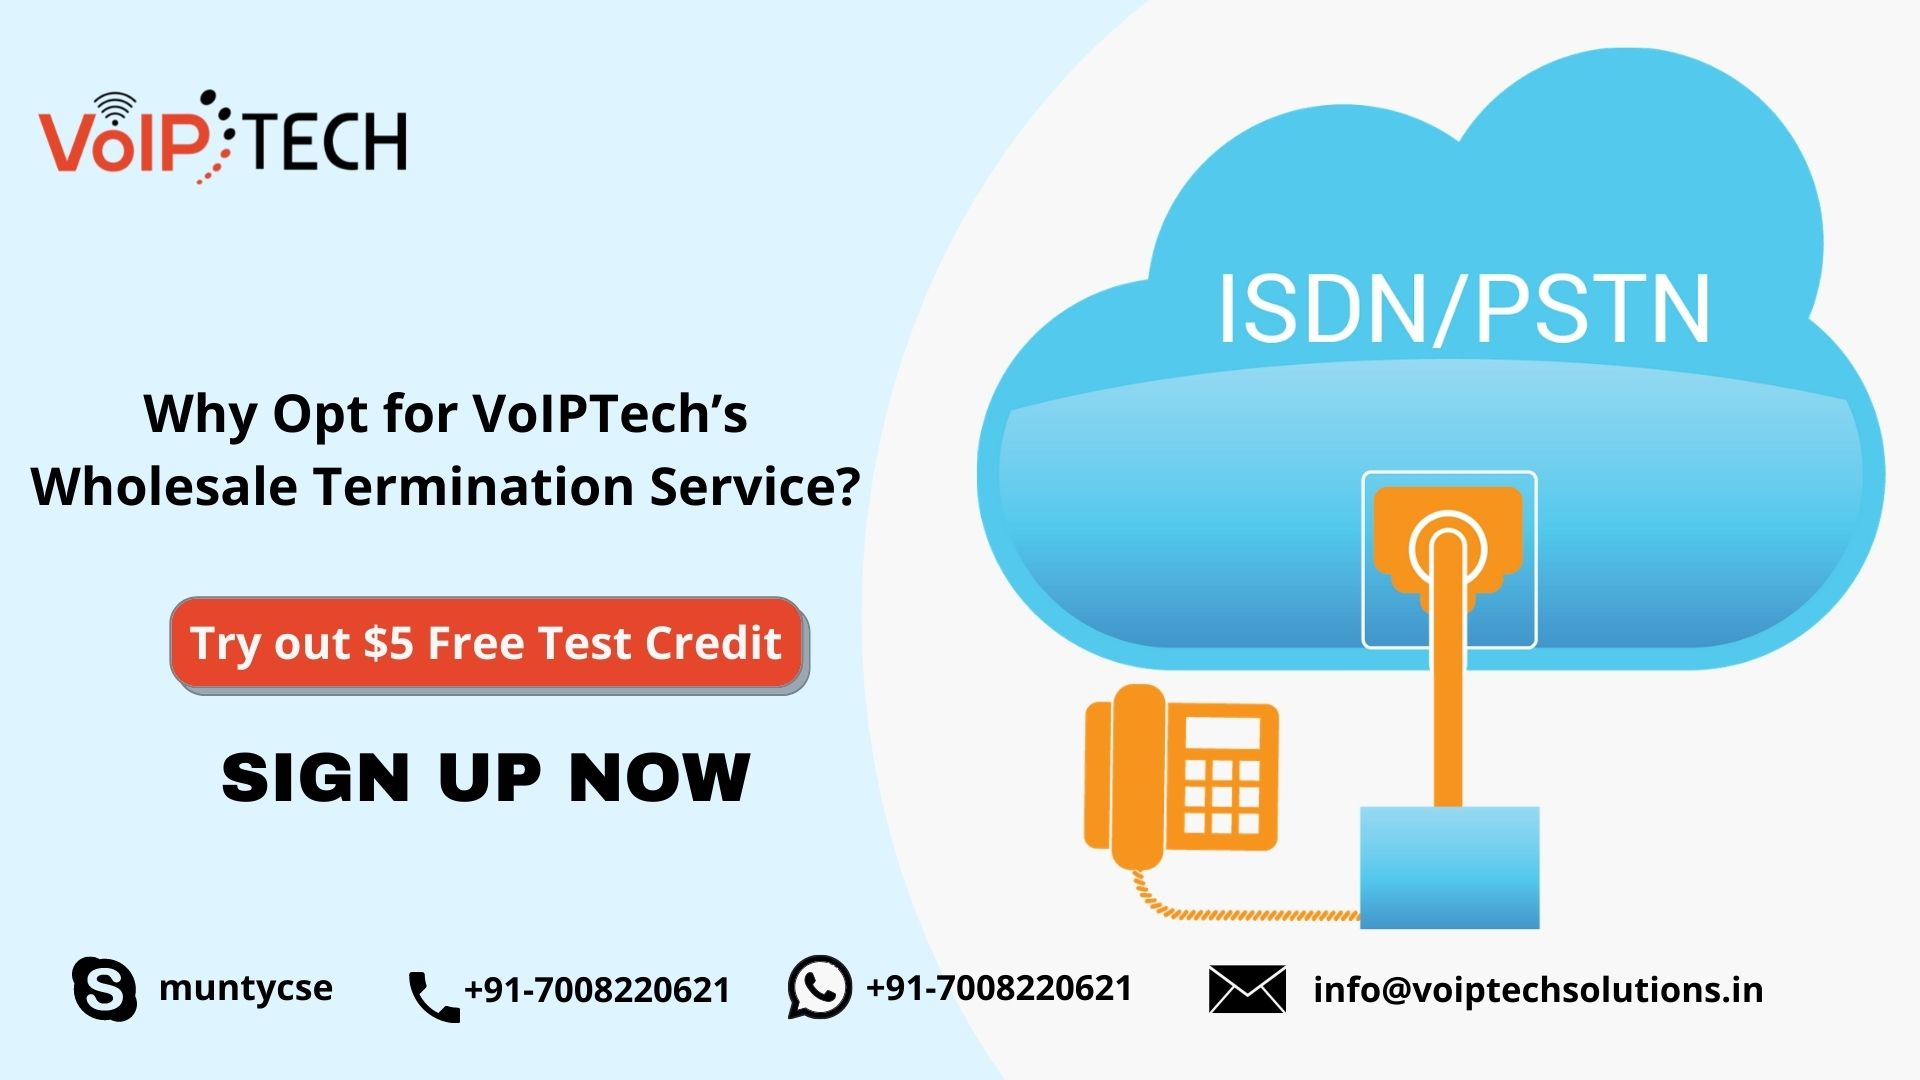 Wholesale Termination Service, Exploring The VoIP Technology from Business Point of view. Pros & Cons! ,VoIP Business, VoIP tech solutions, vici dialer, virtual number, Voip Providers, voip services in india, best sip provider, business voip providers, VoIP Phone Numbers, voip minutes provider, top voip providers, voip minutes, International VoIP Provider